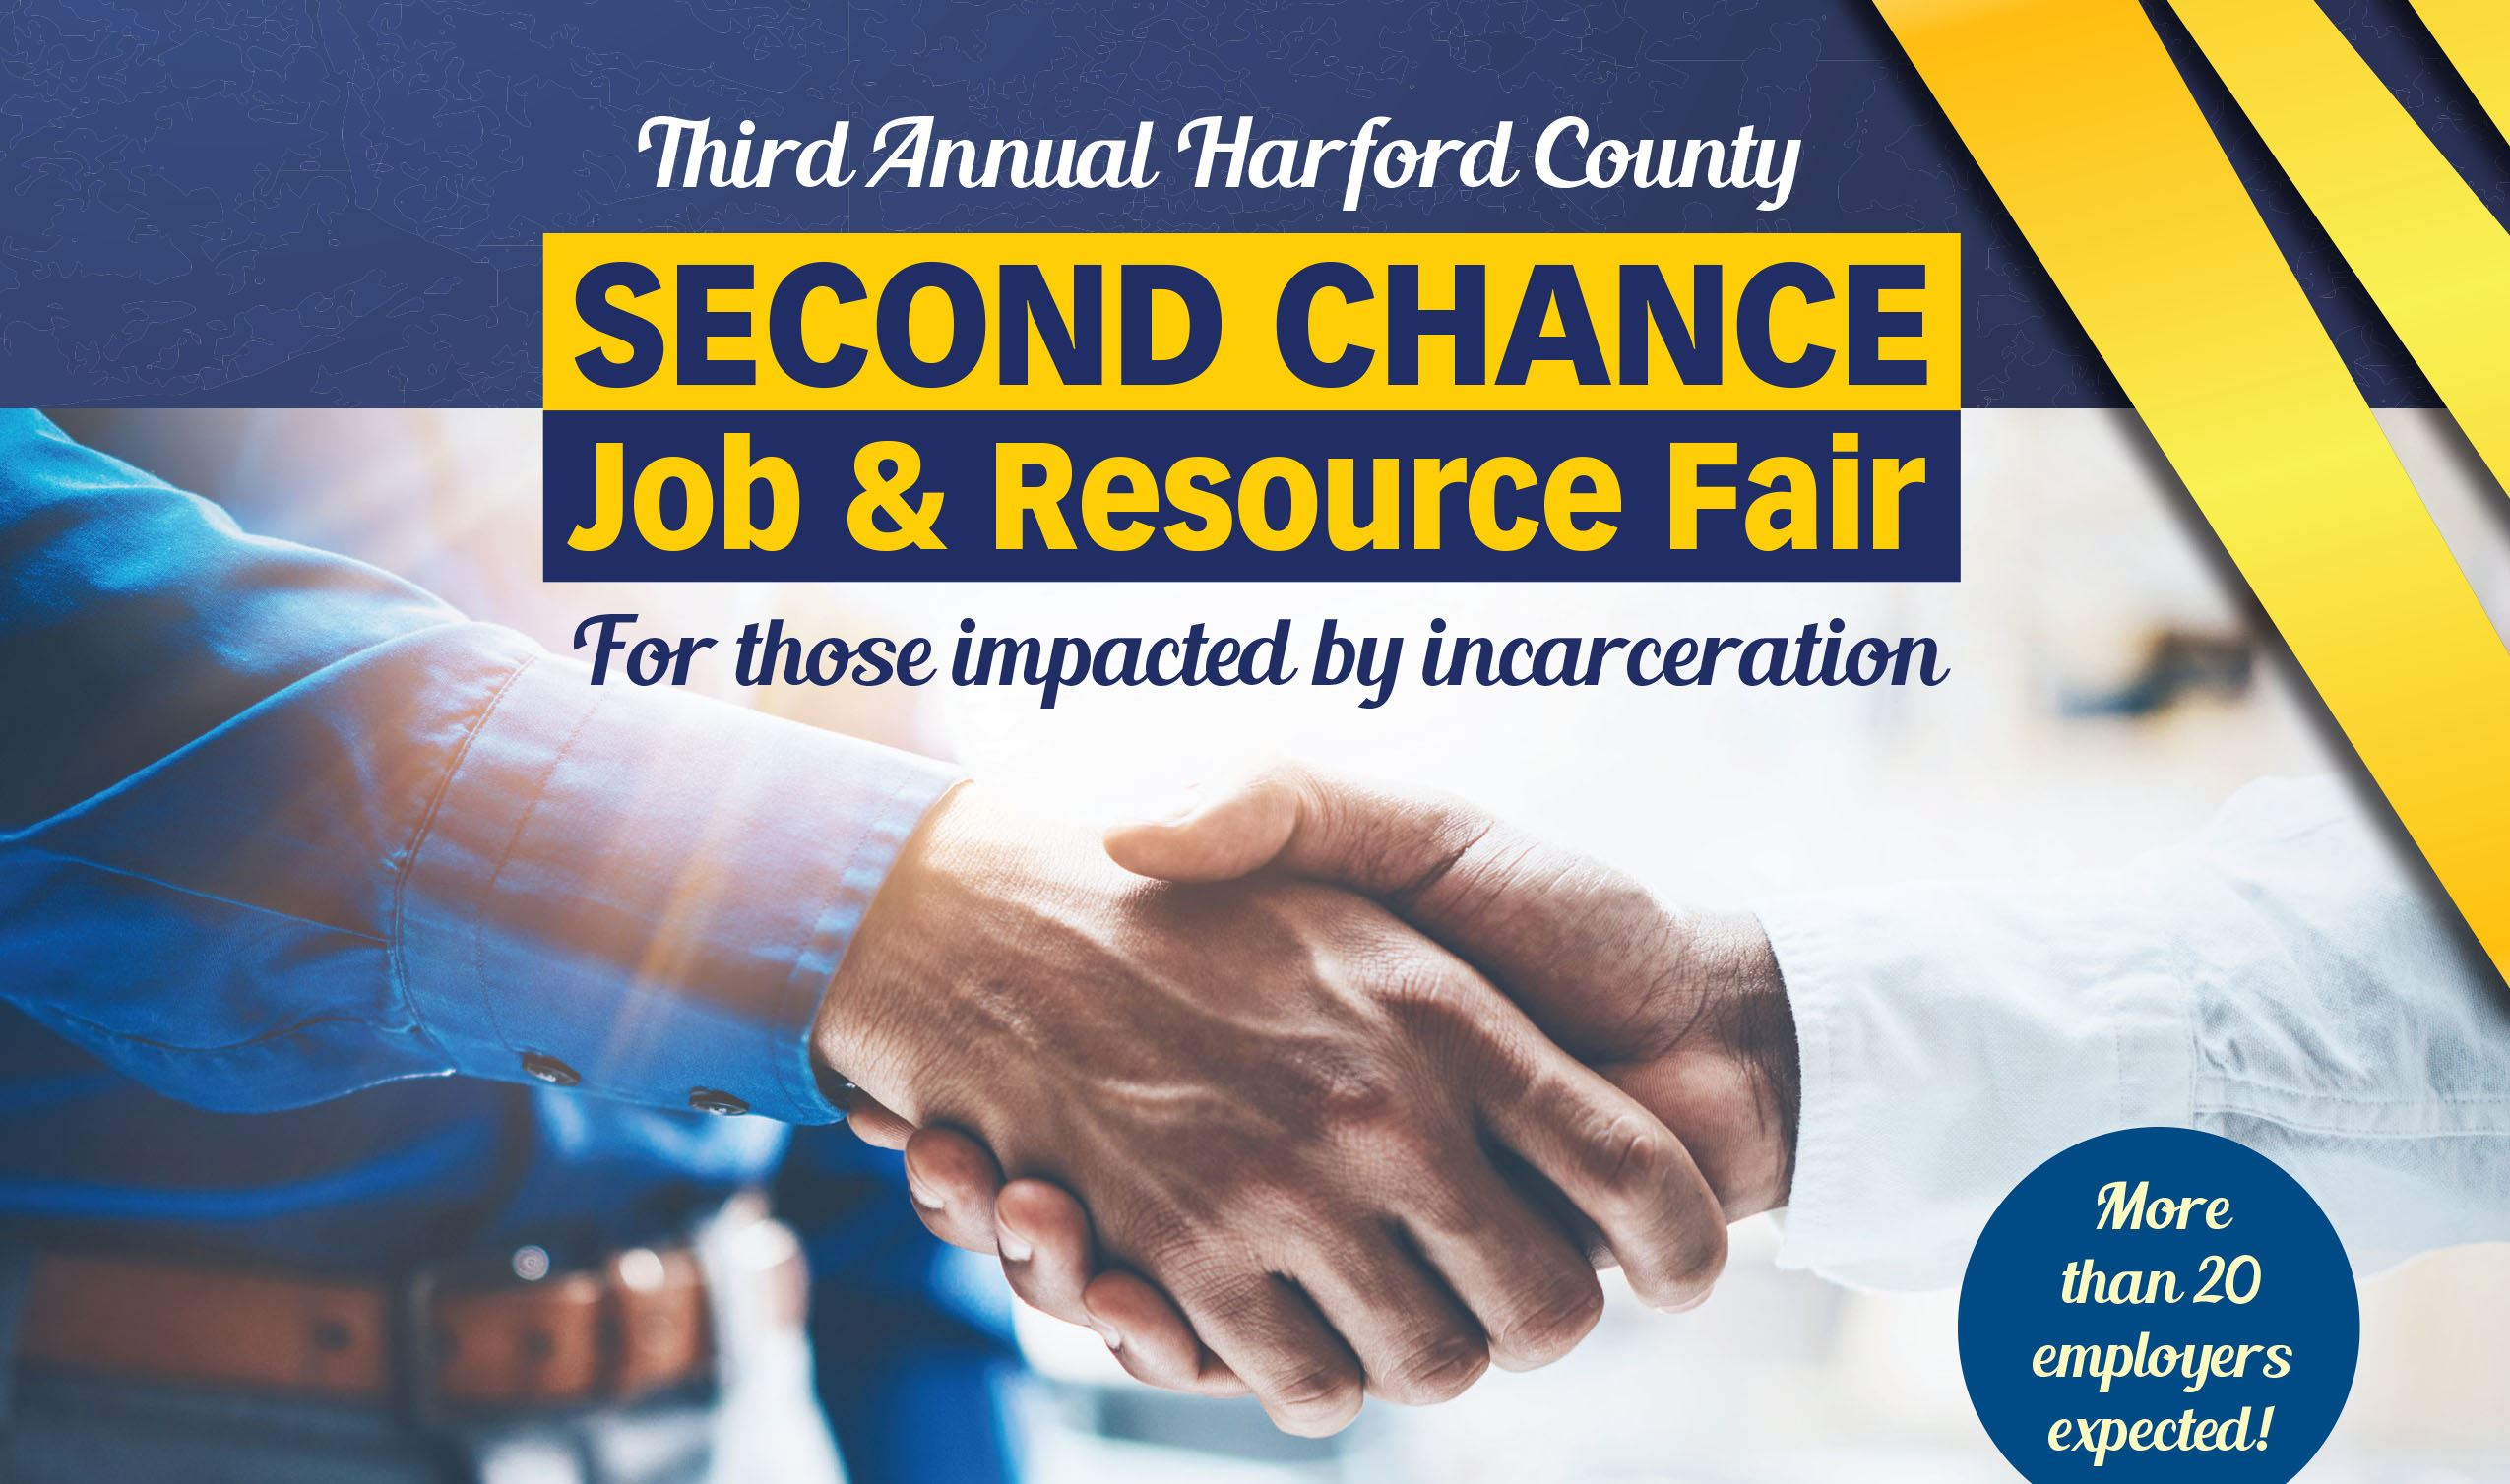 Second Chance Fair Image